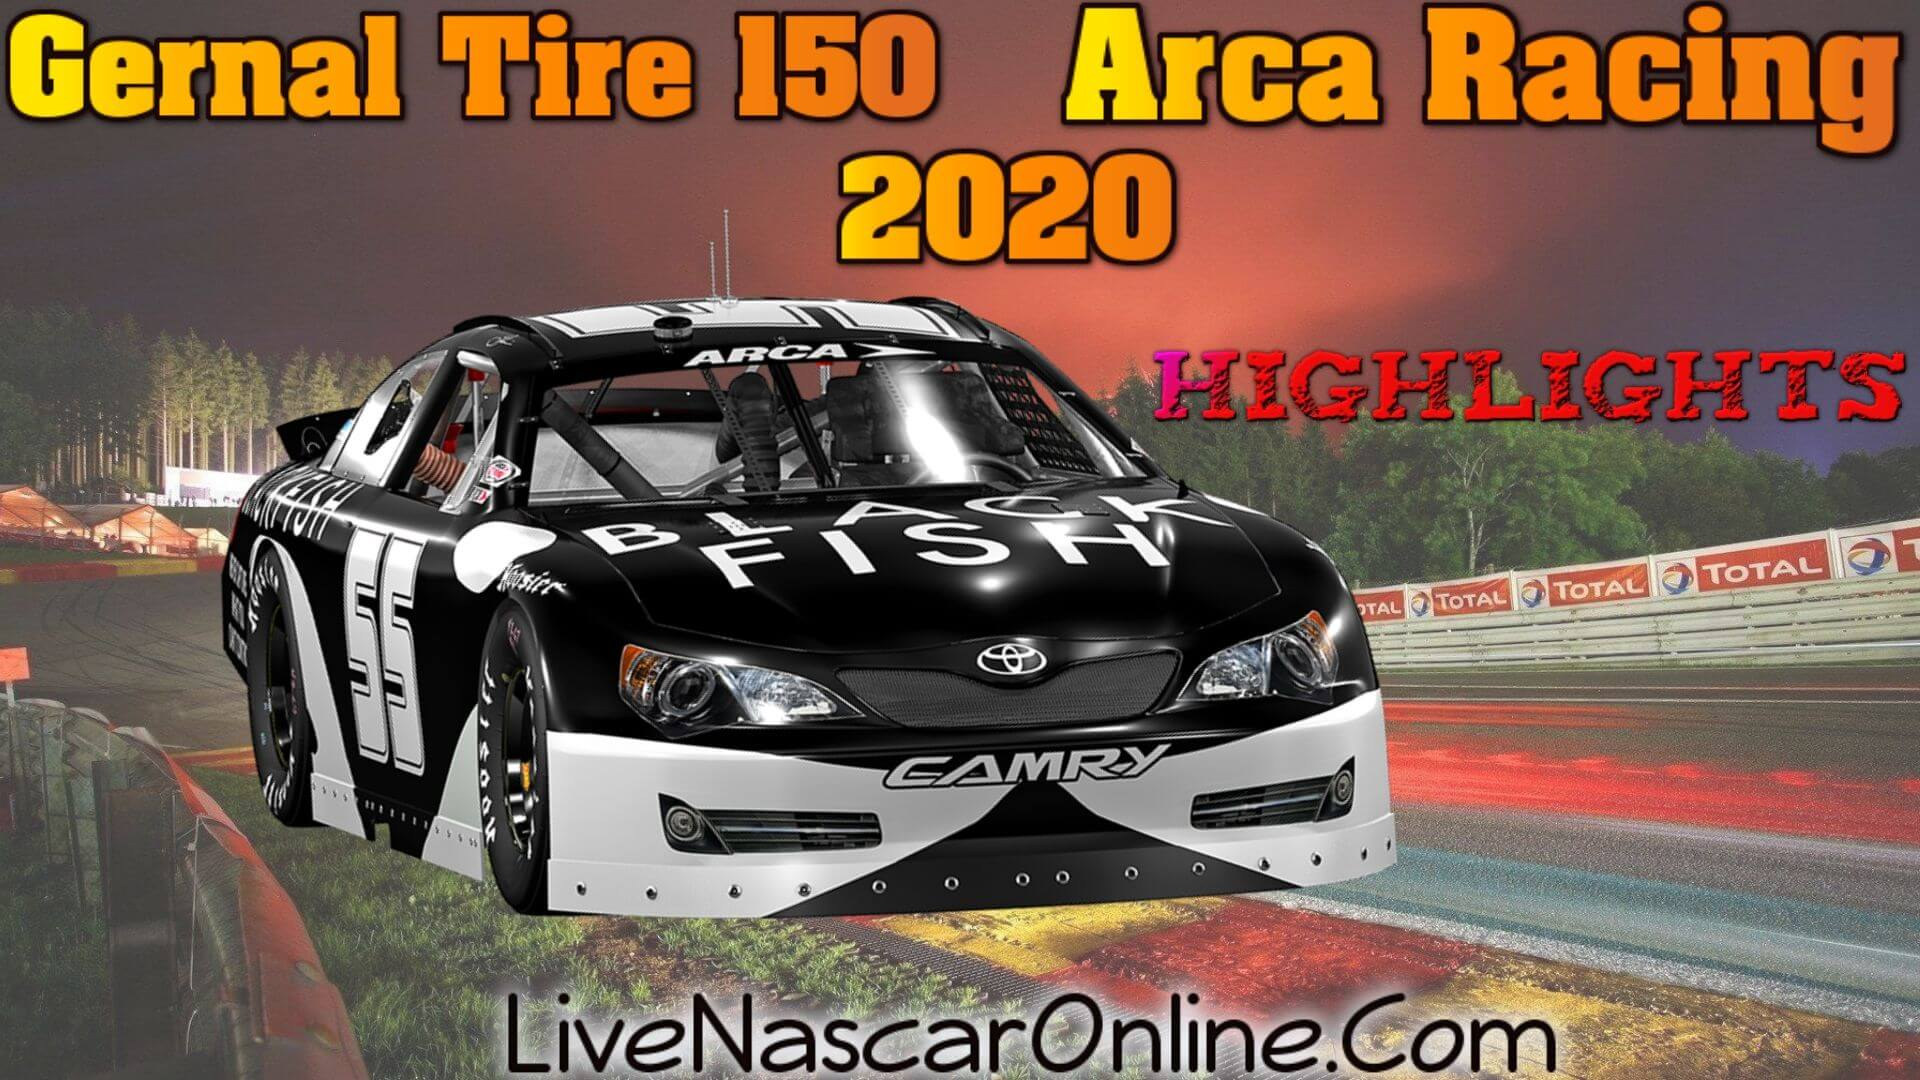 Gernal Tire 150 Arca Racing 2020 Highlights